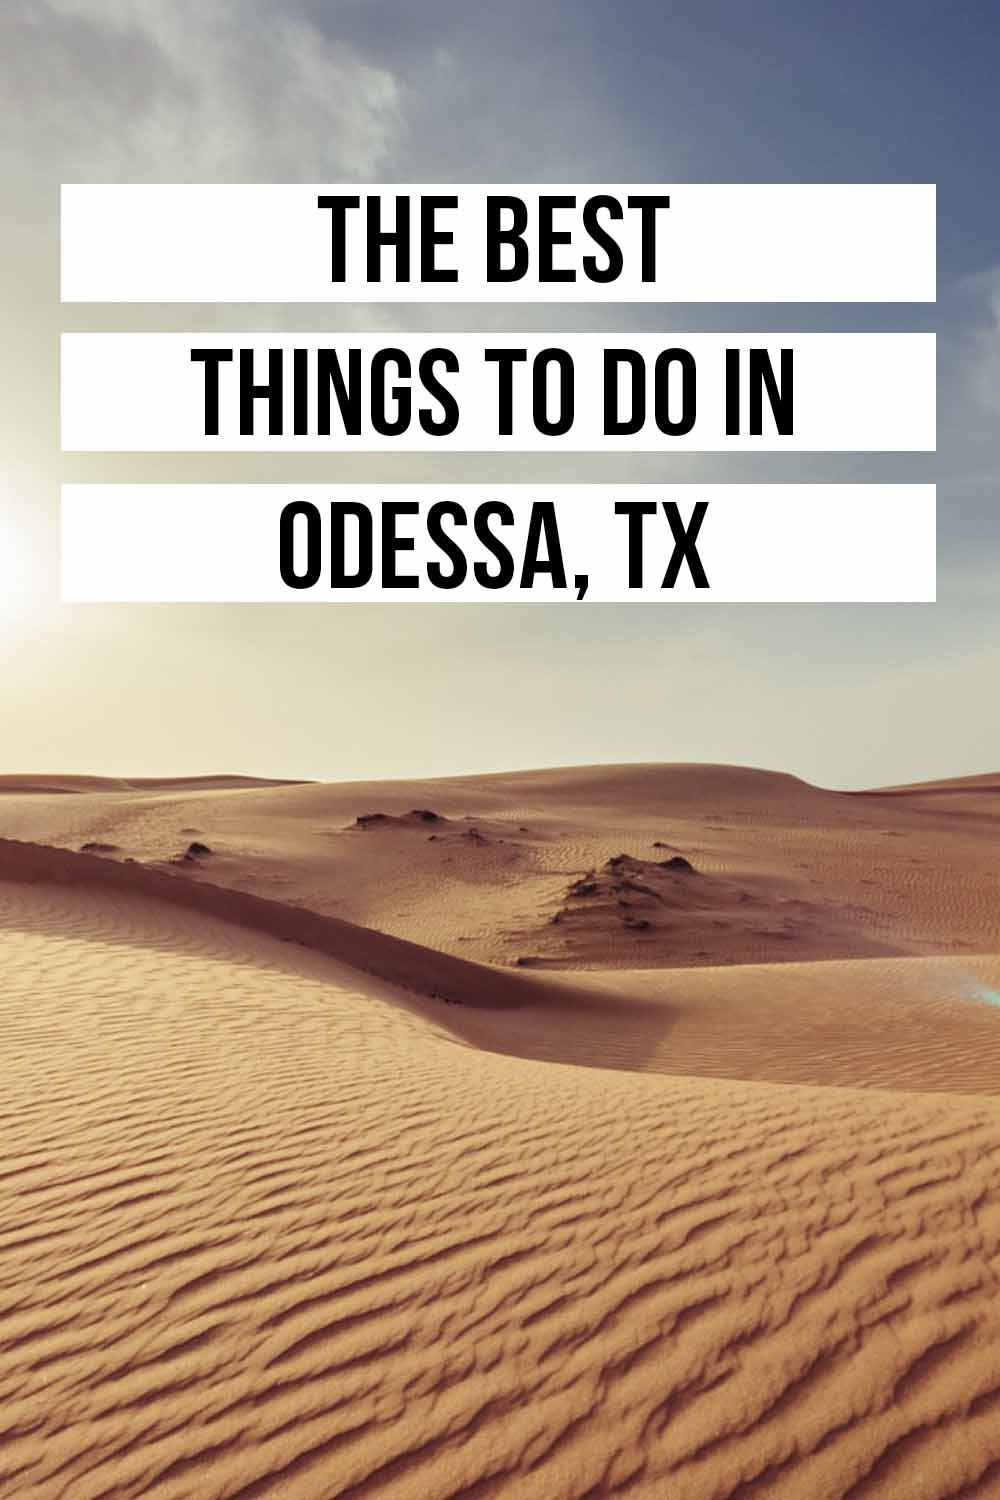 Best Things to do in Odessa, TX